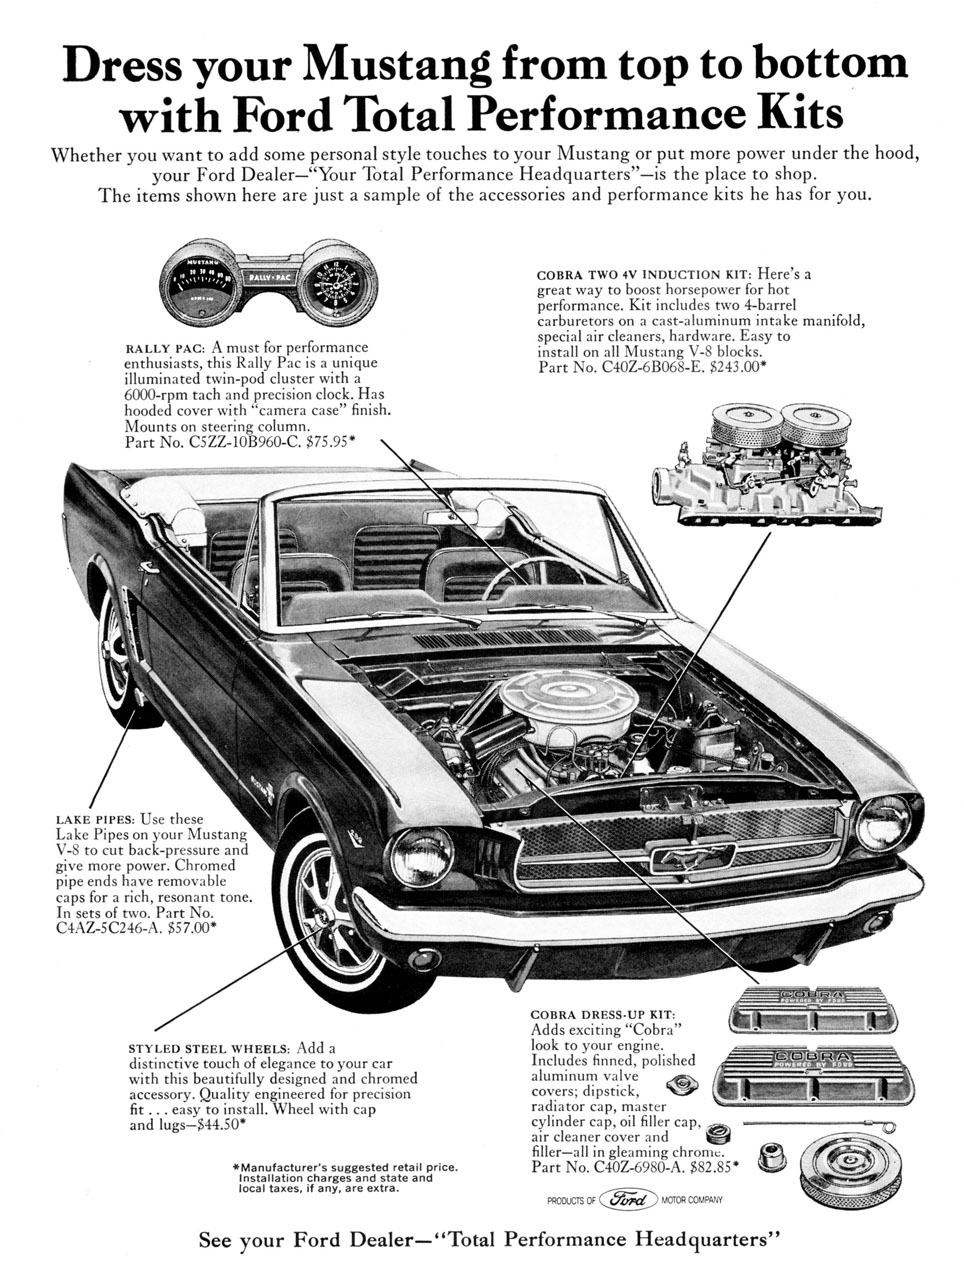 1966 Mustang - Ford Total Performance Kit